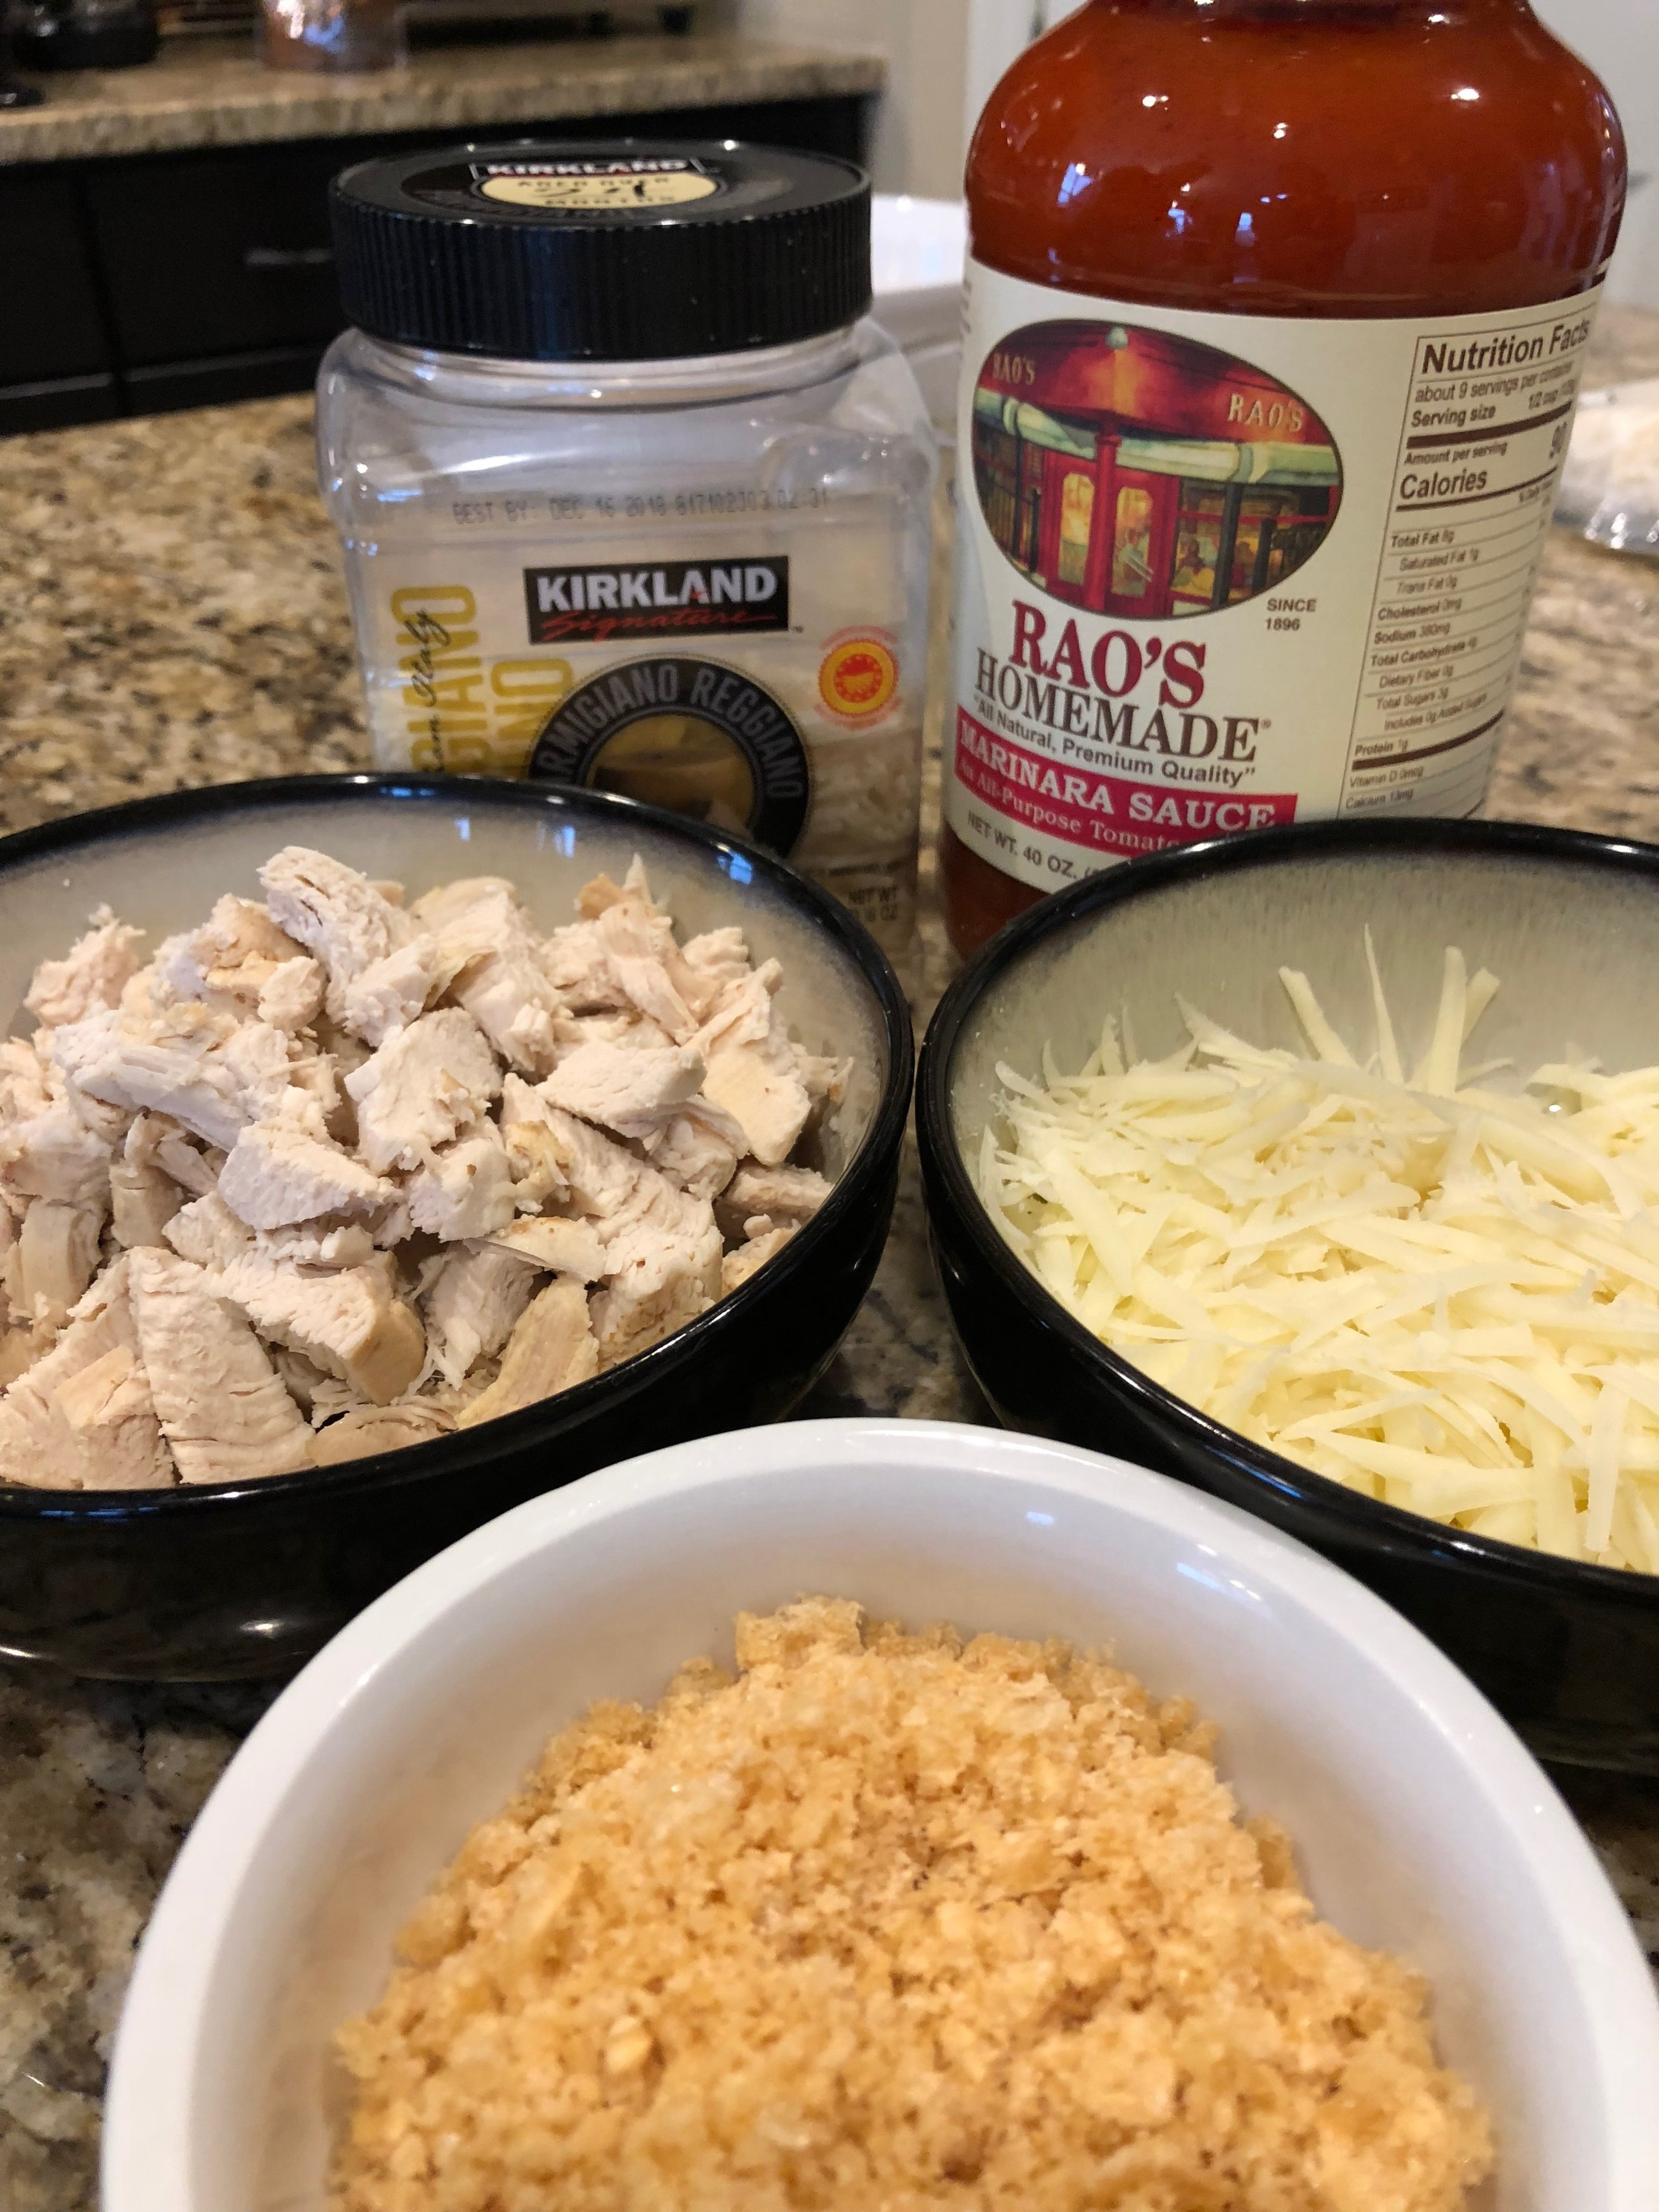 Keto Low carb chicken parmesan dinner recipe pork rinds